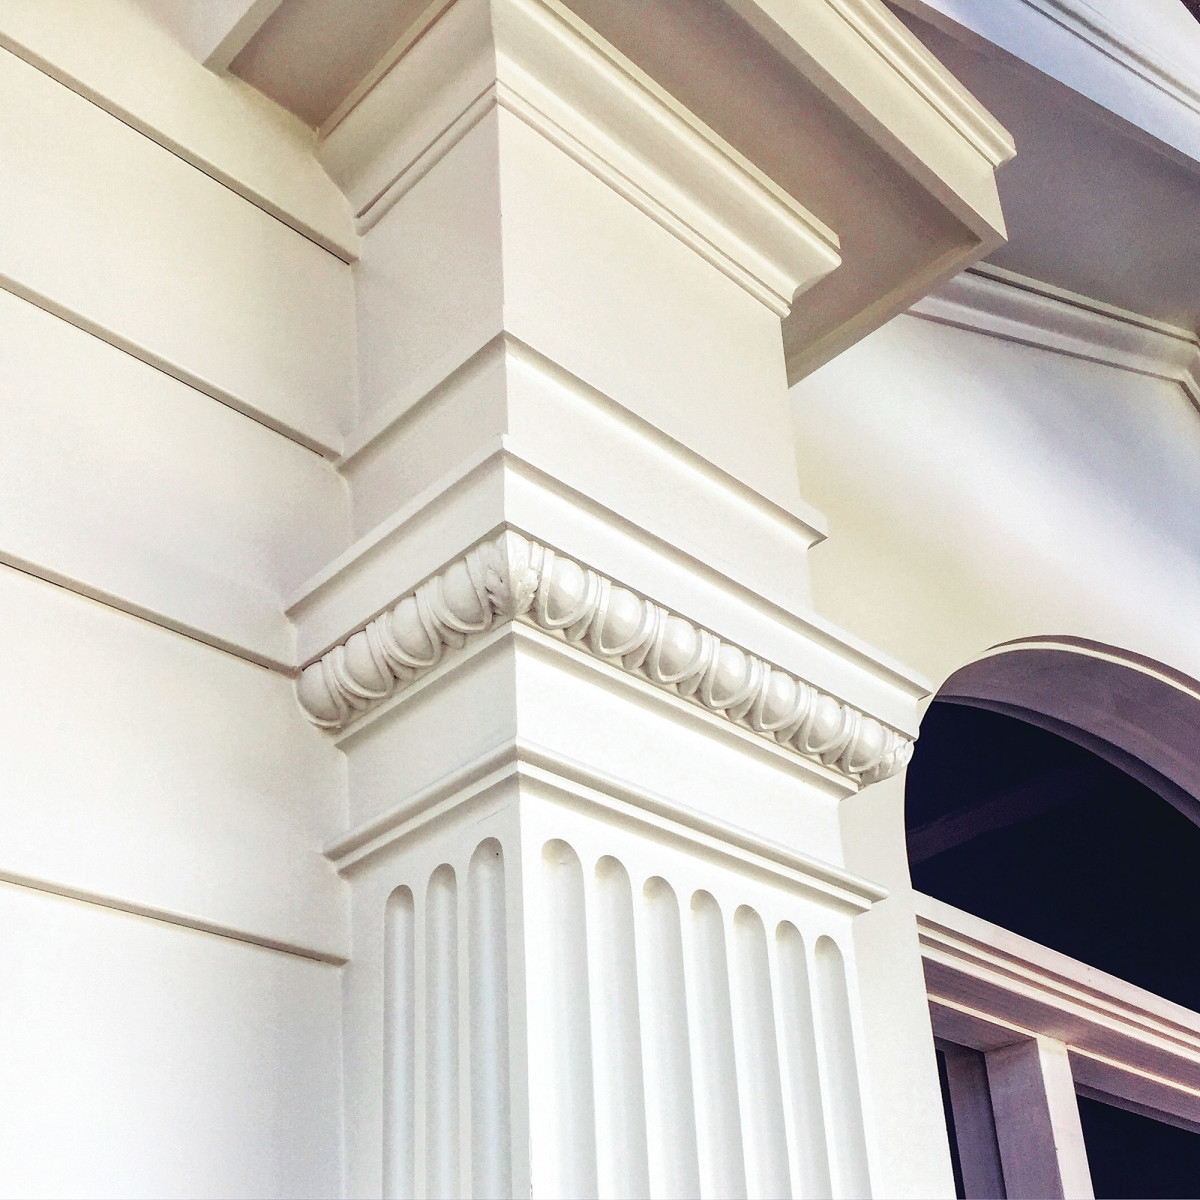 Doric entablature for a Colonial door surround